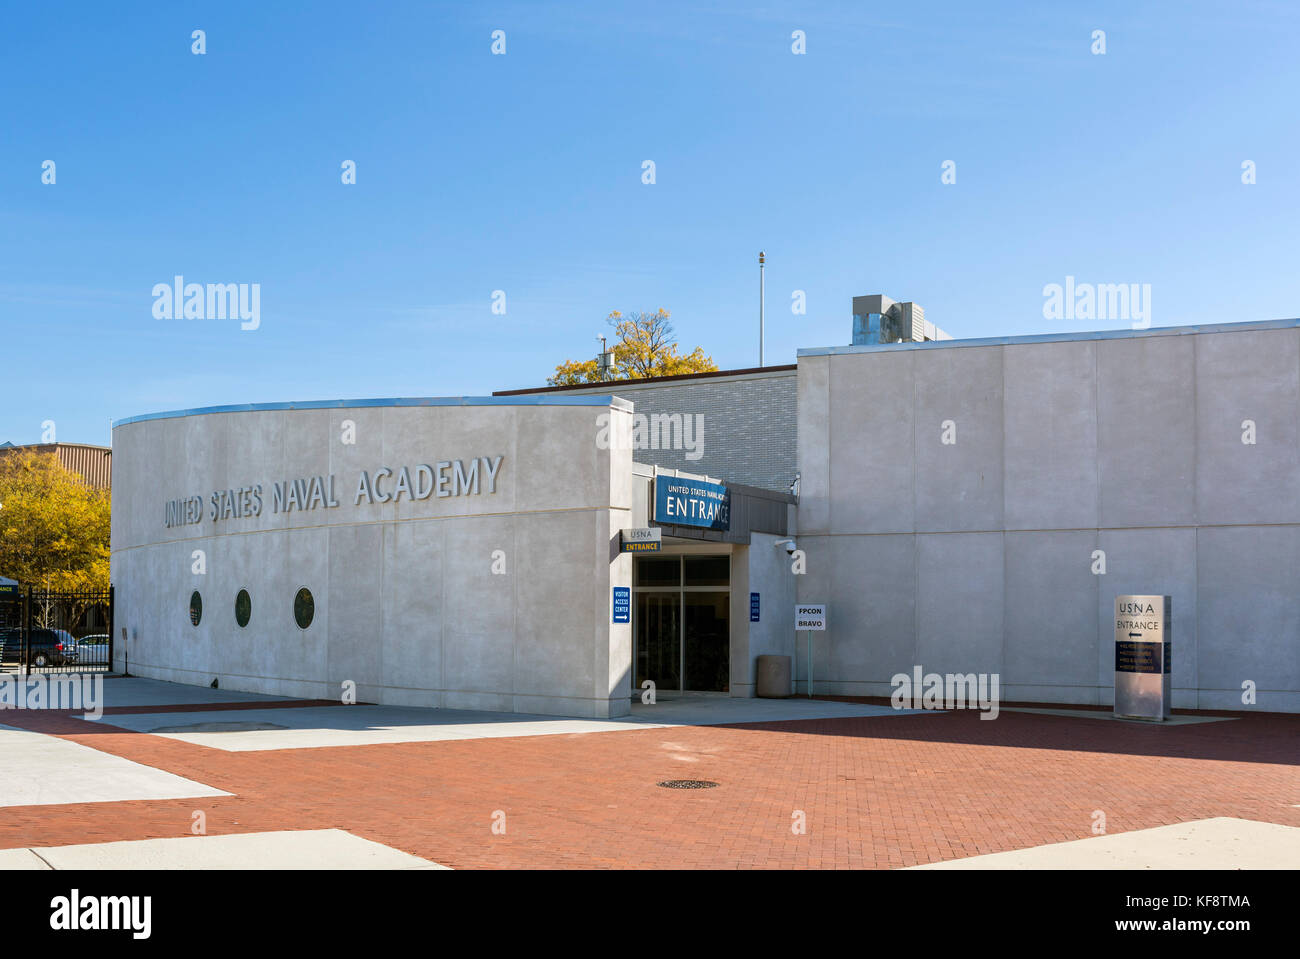 Entrance to the United States Naval Academy, Annapolis, Maryland, USA - Stock Image